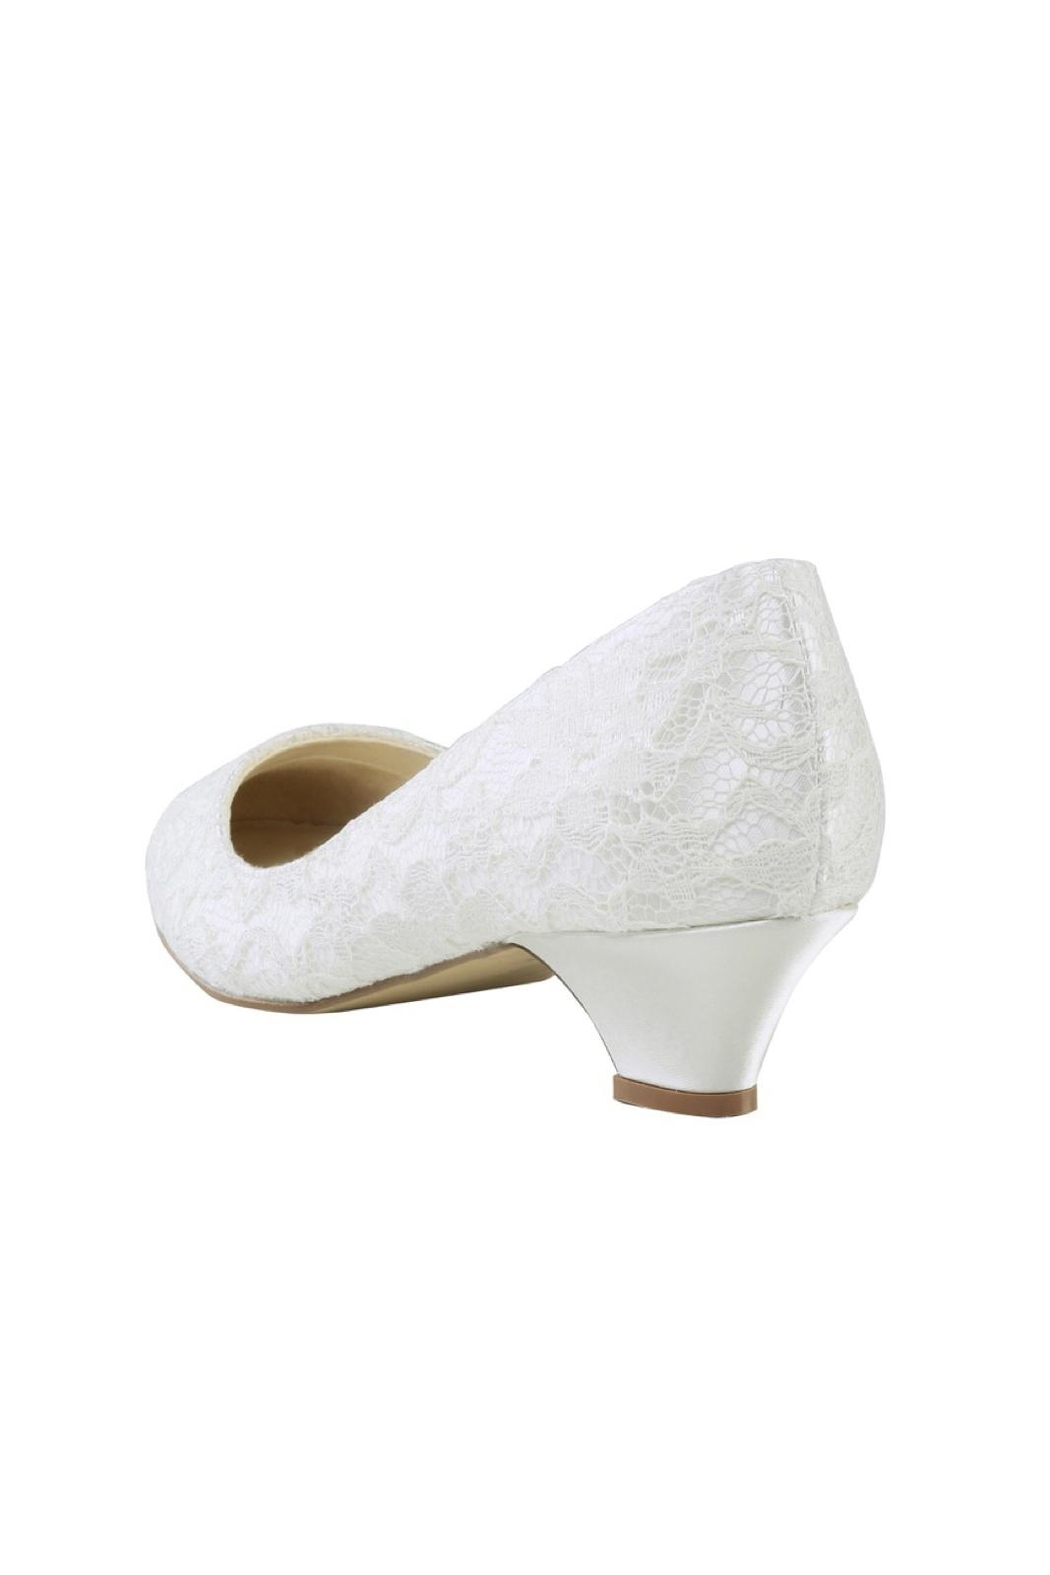 pink paradox London Bonbon Ivory Lace Shoes - Side Cropped Image